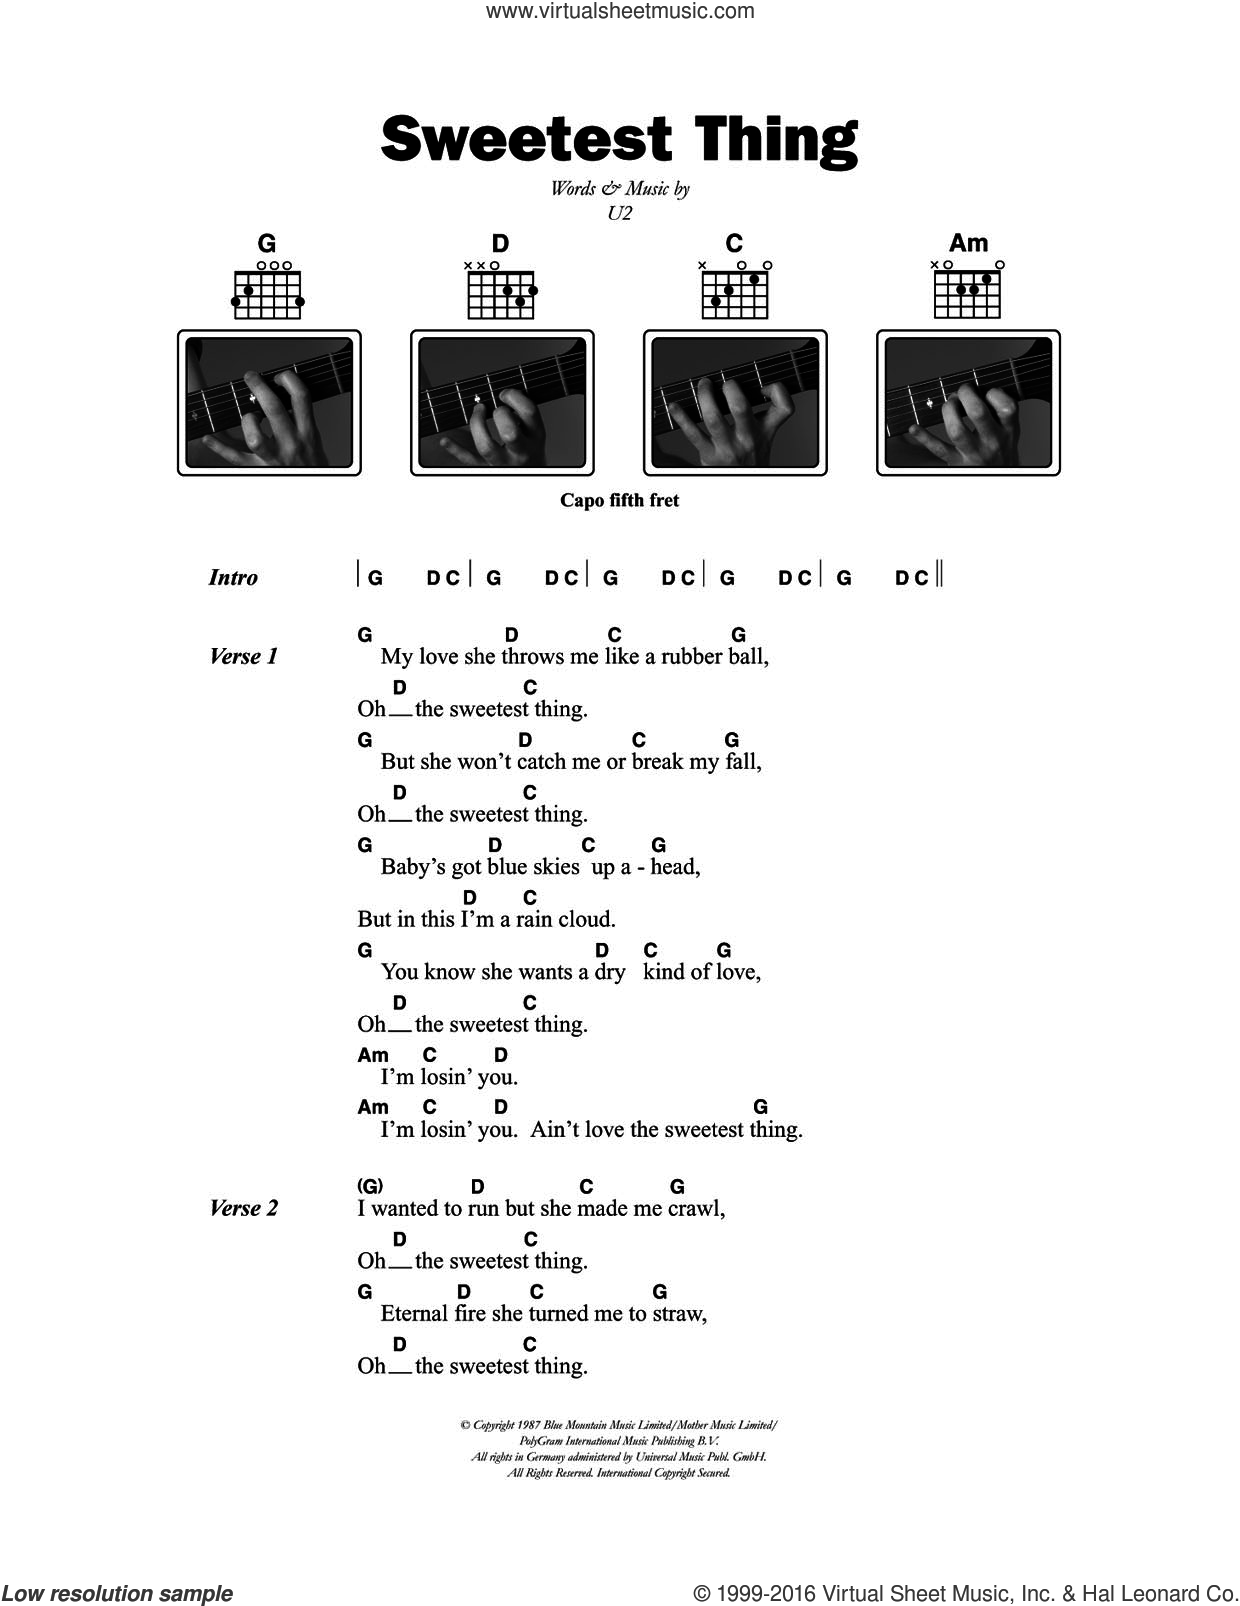 Sweetest Thing sheet music for guitar (chords) by U2